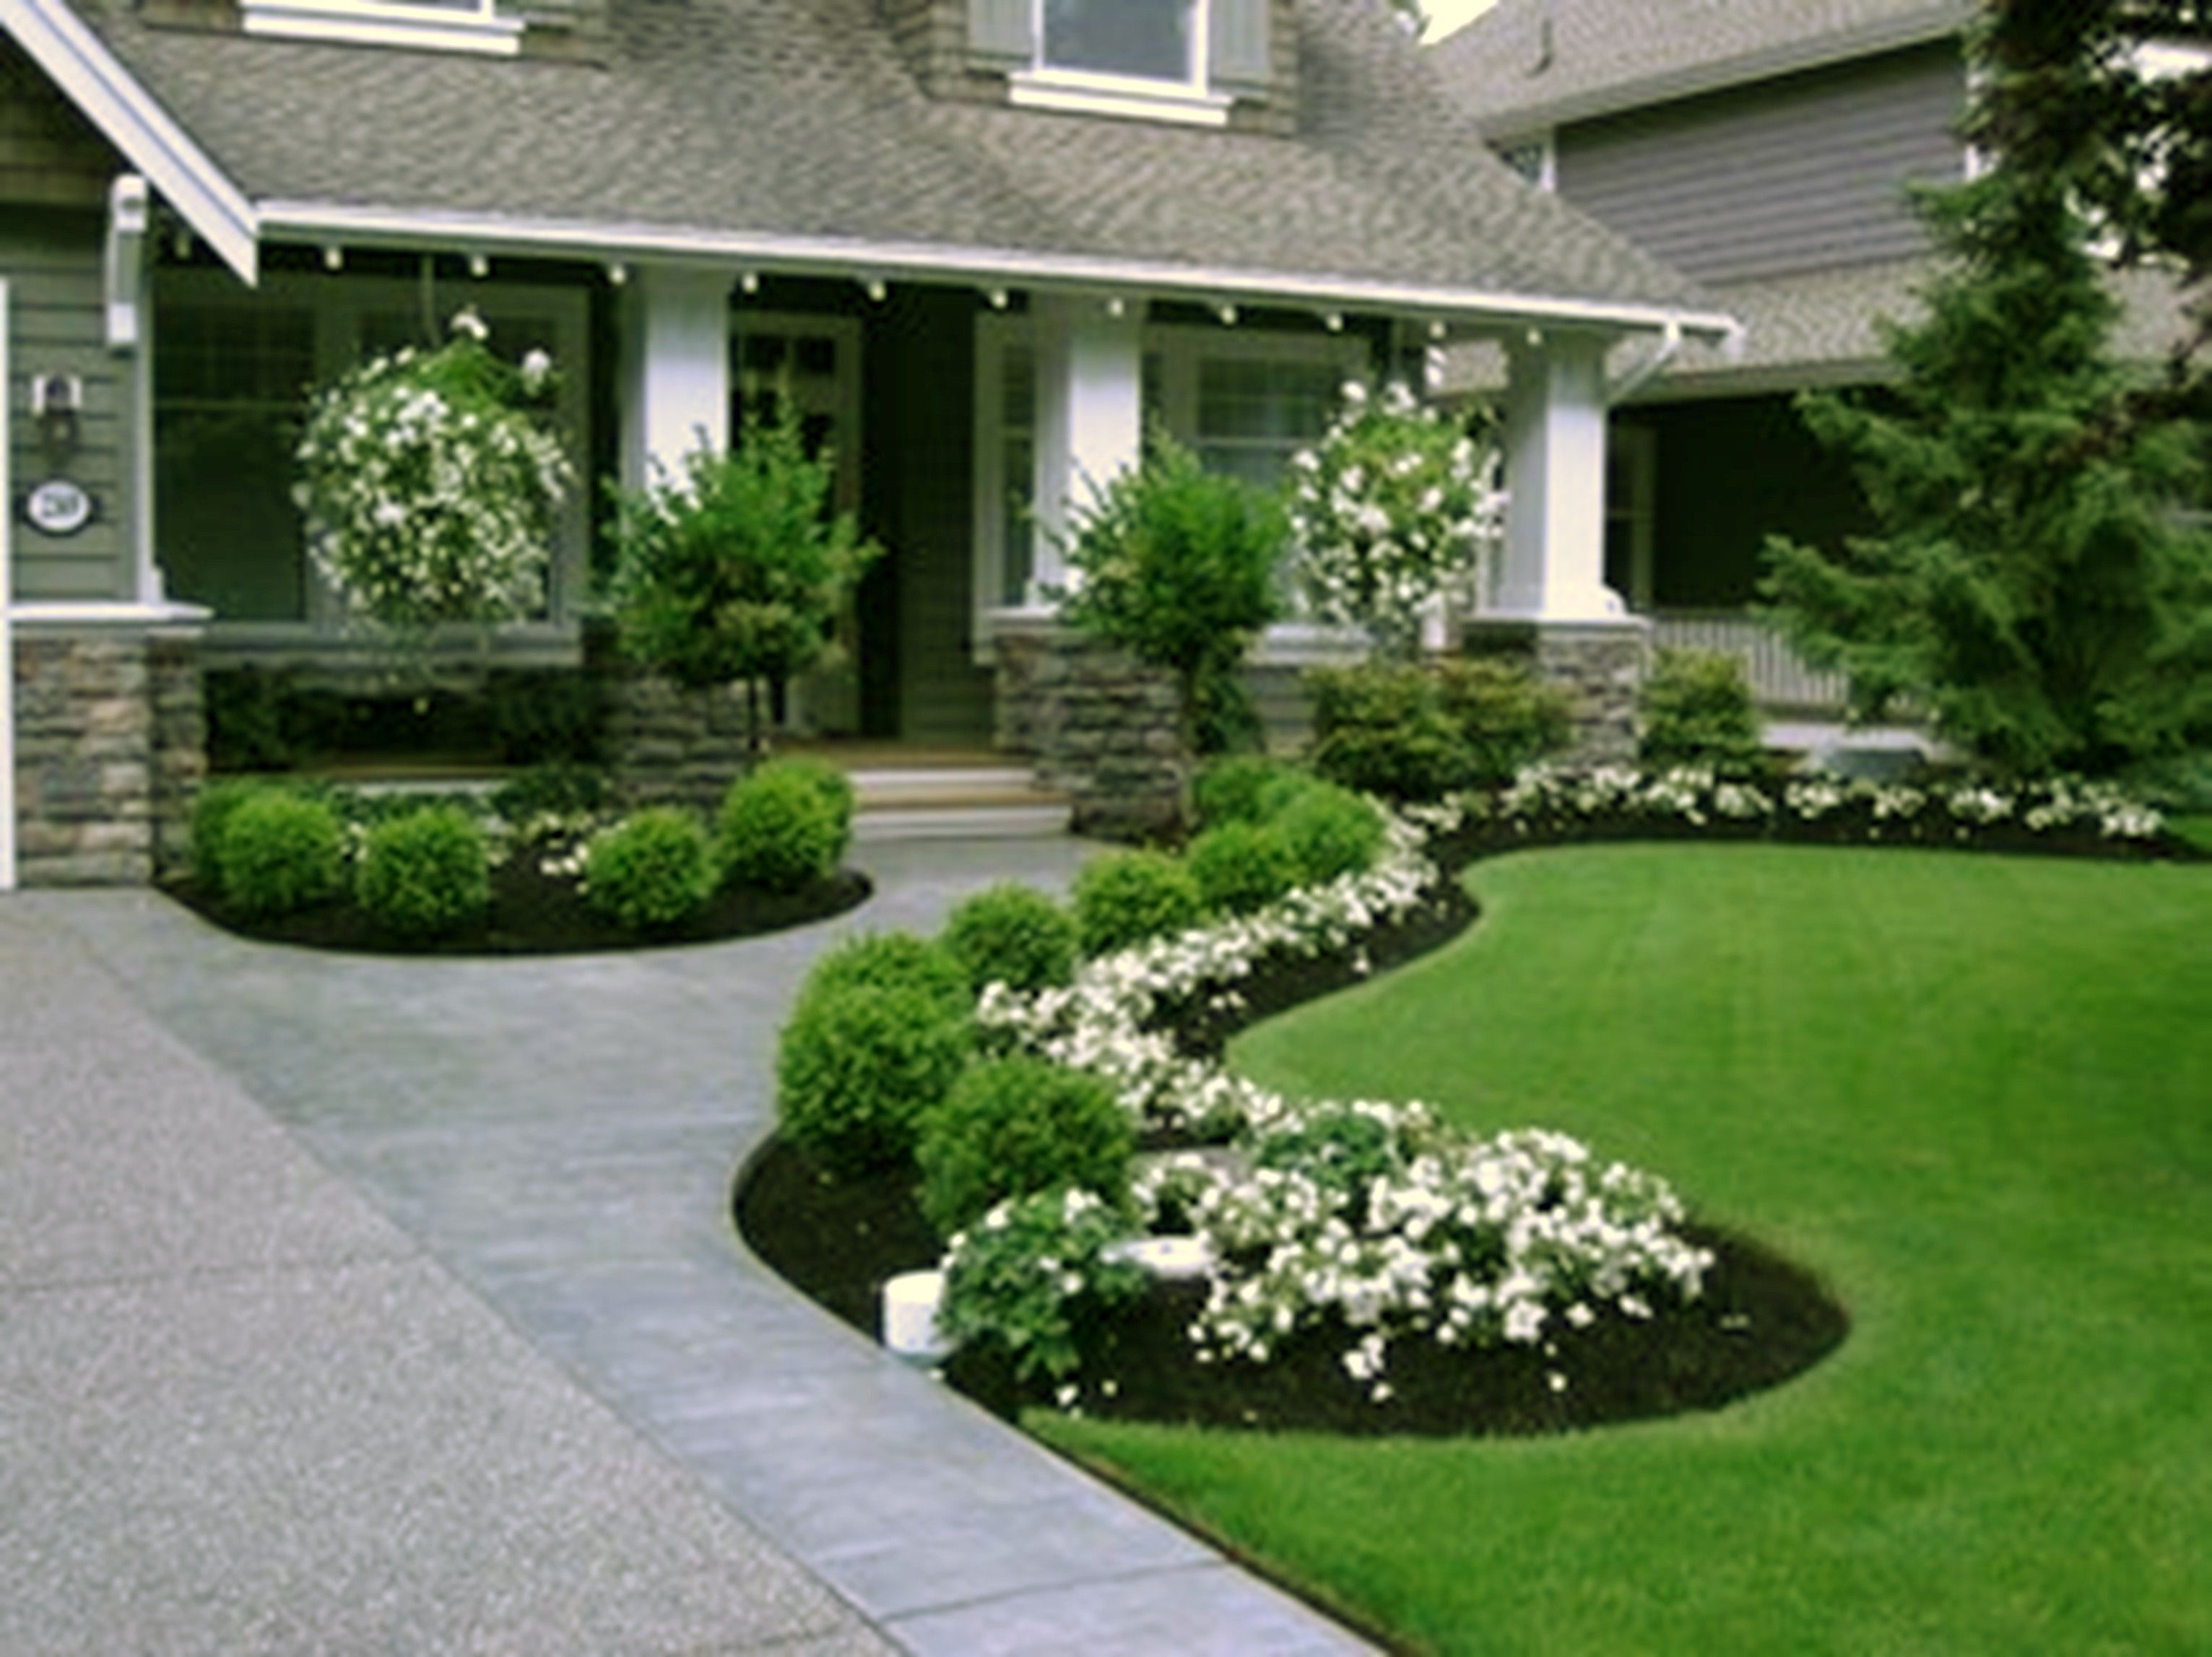 Landscape Design Ideas For Front Yard curbing for yards front yard landscape design ideas landscape curb appeal executive Garden Decorations Diy Project Recycled Materials Gardens Best 20 Front Yard Design Ideas